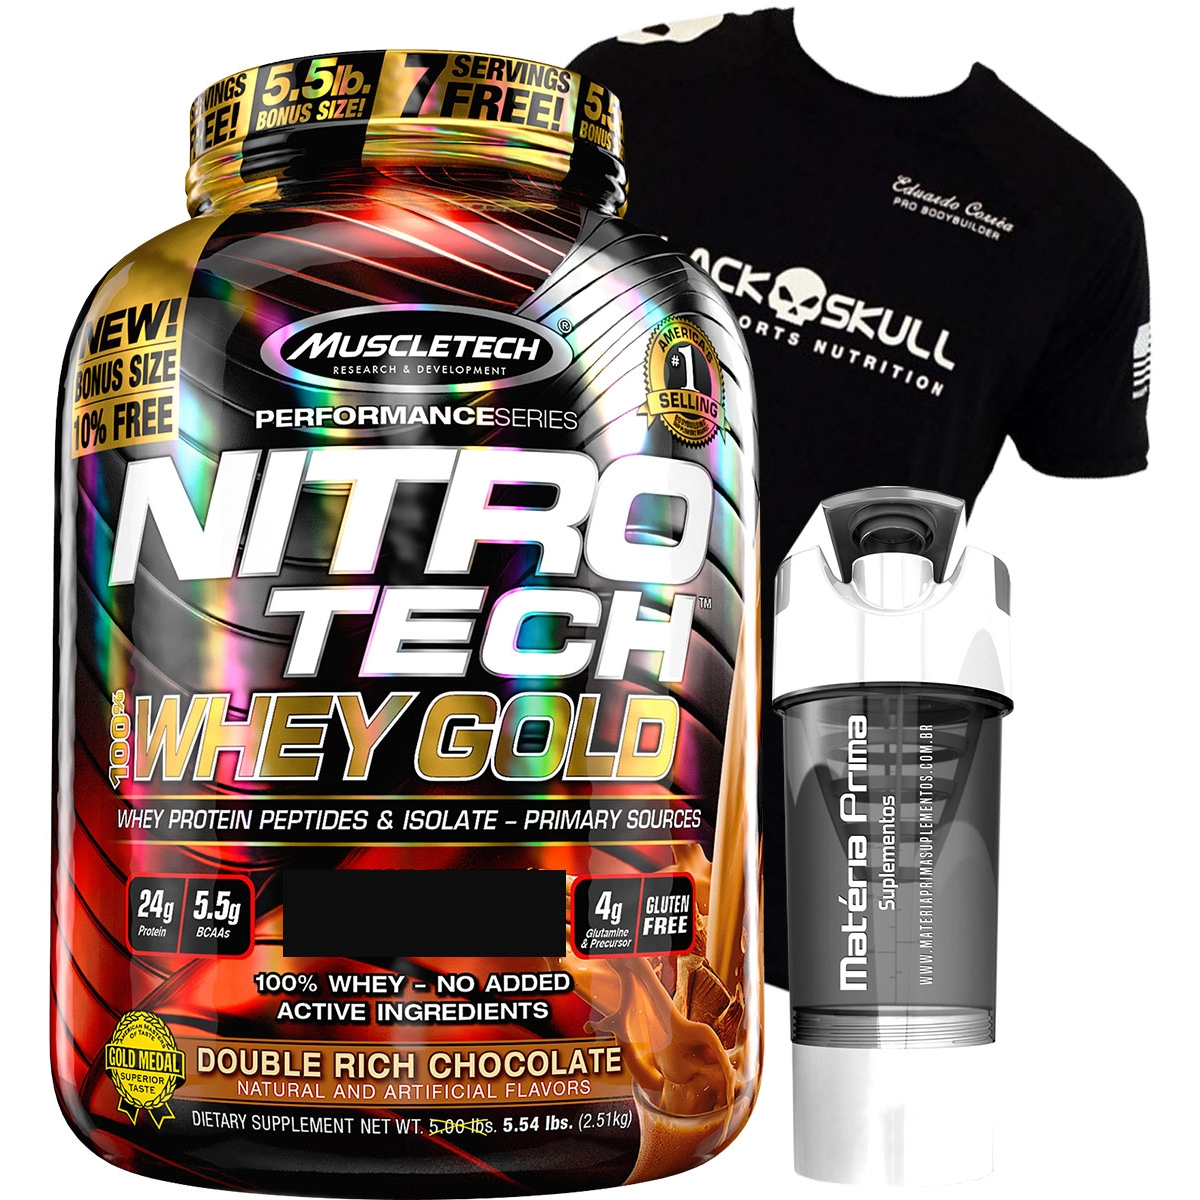 08d532869 NitroTech 100% Whey Gold (2.49kg) - Muscletech + Fit Top Shaker Cyclone ...